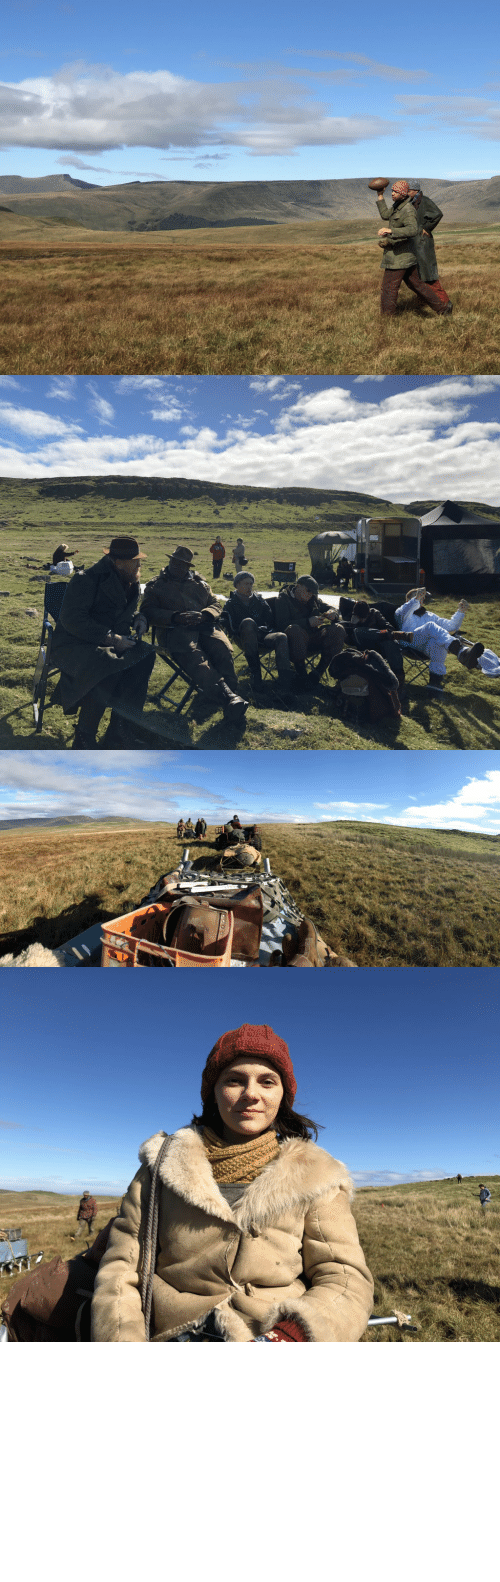 Behind The: #HisDarkMaterials Behind The Scenes Ep. 5 The Gyptians between camera setups, heading North https://t.co/qmY99TlWeN